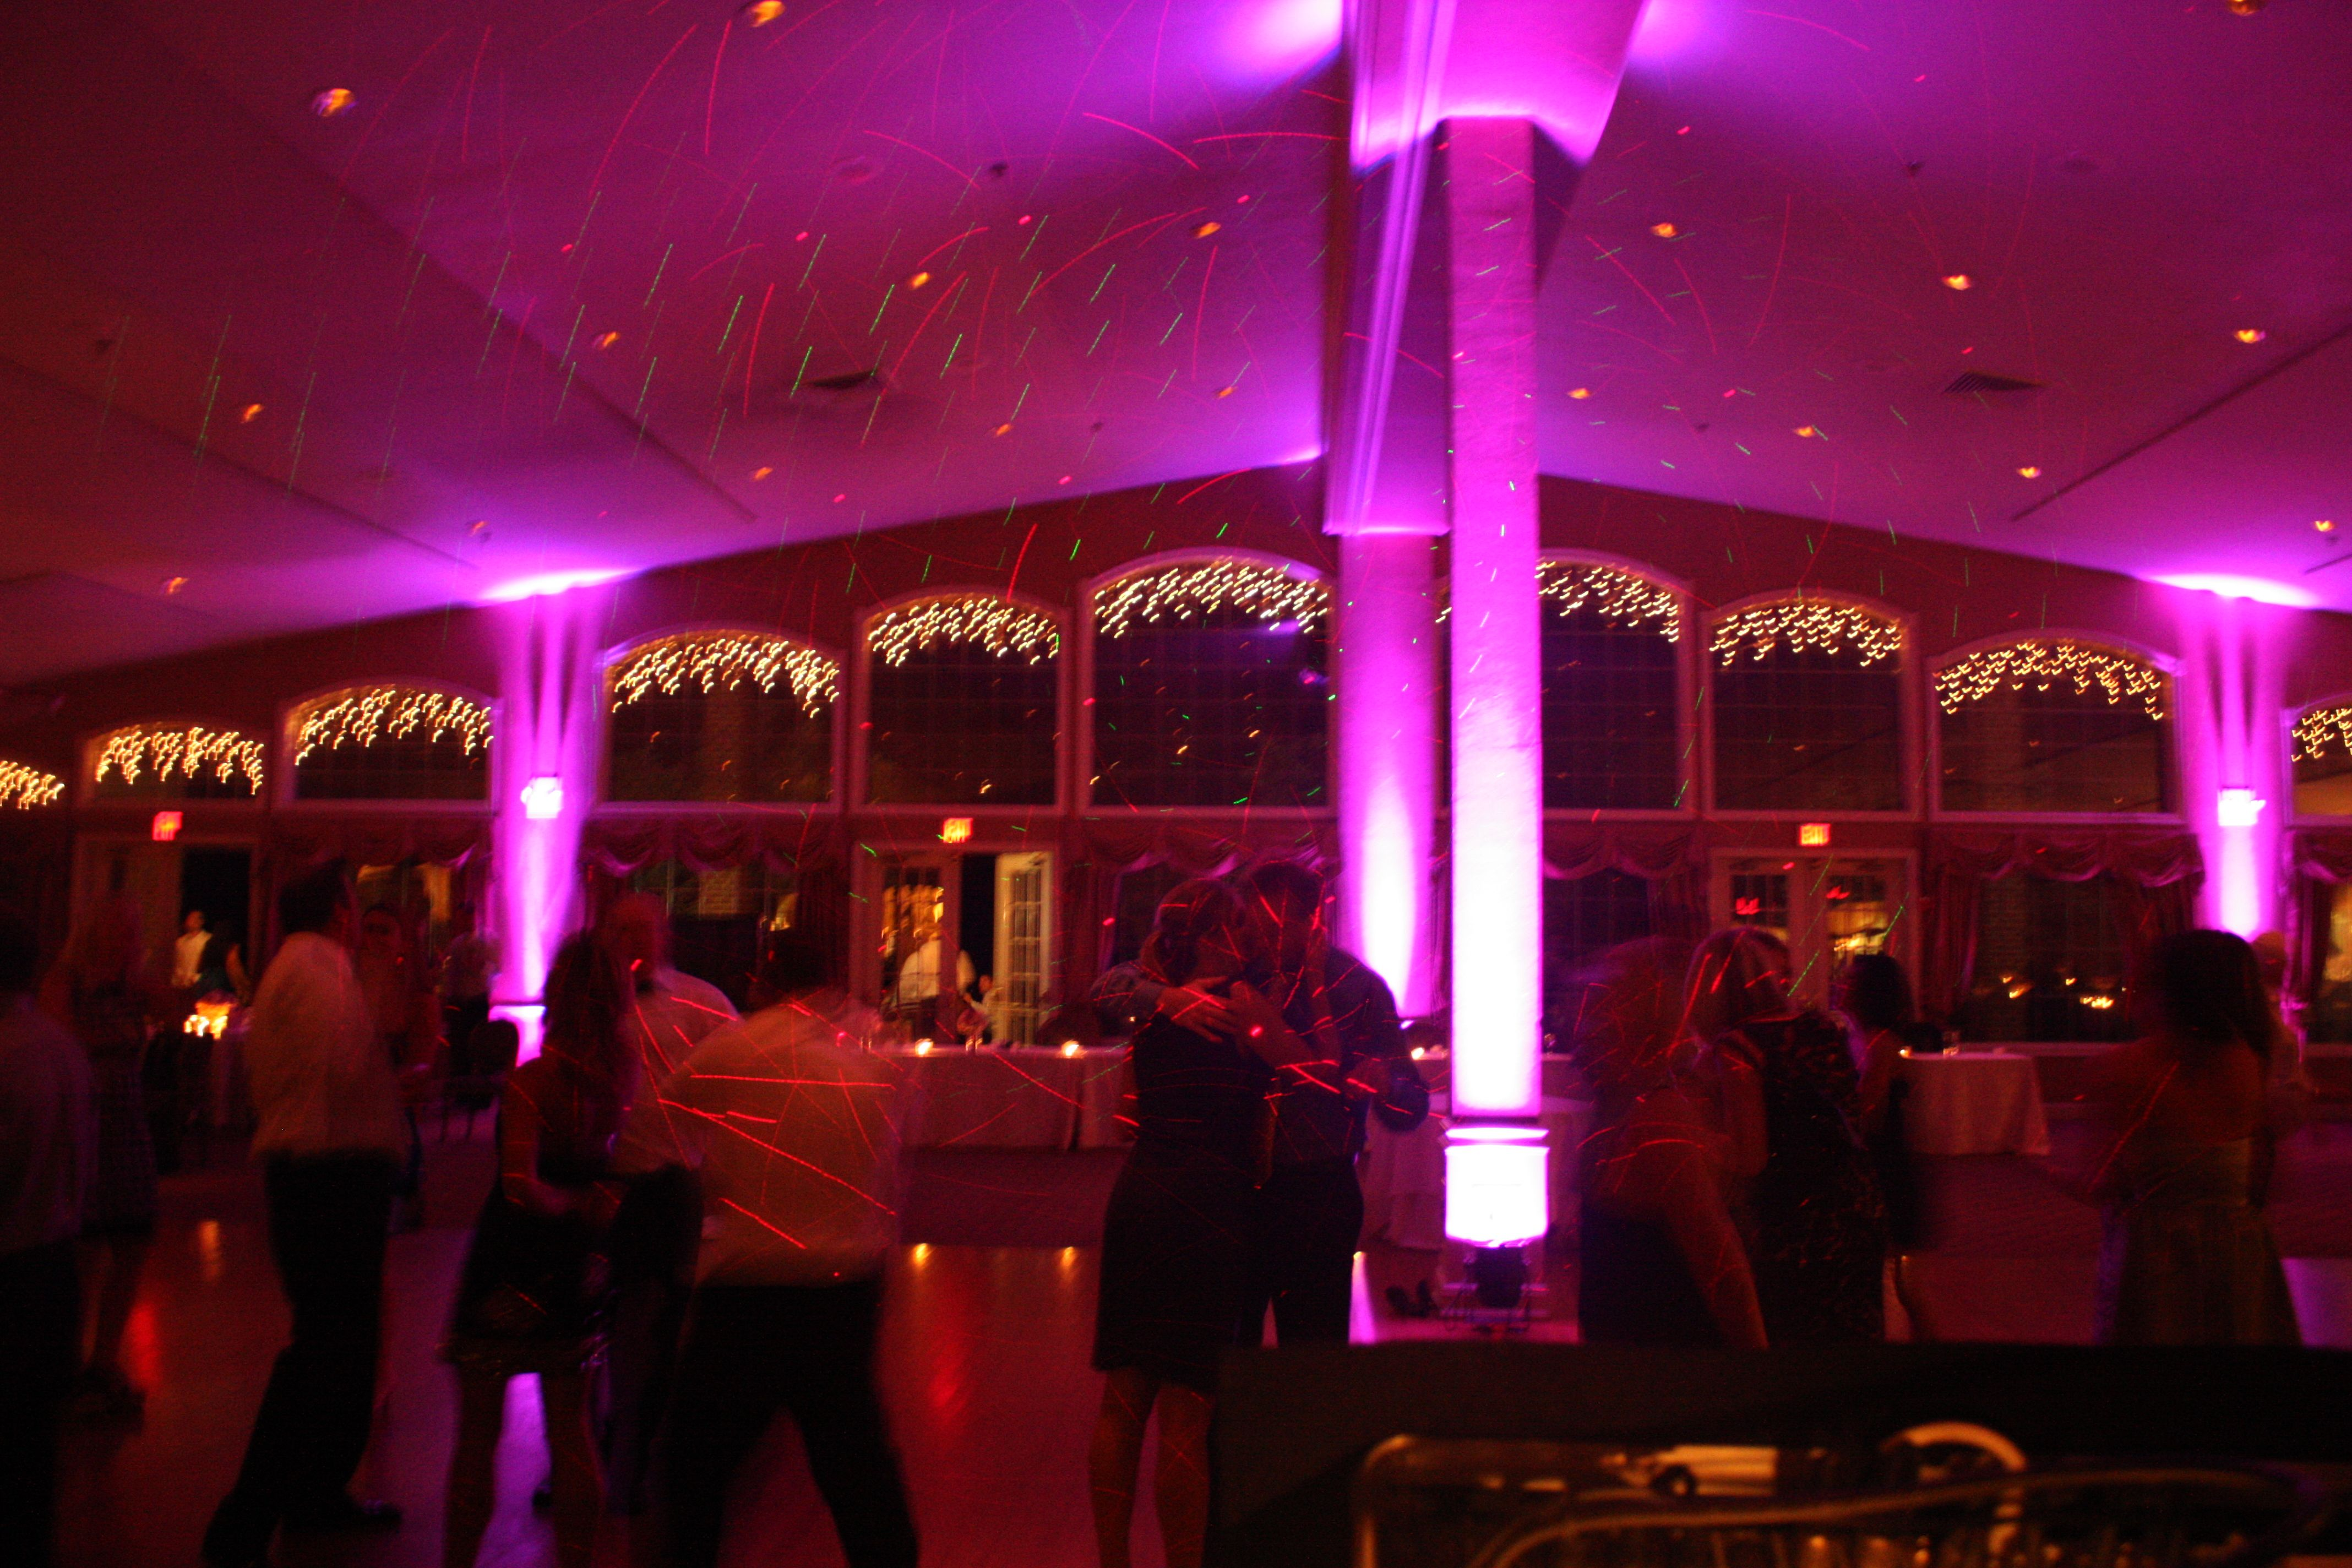 wallpaper hd diy wedding uplighting for androids full pics weymouth country club purple tko